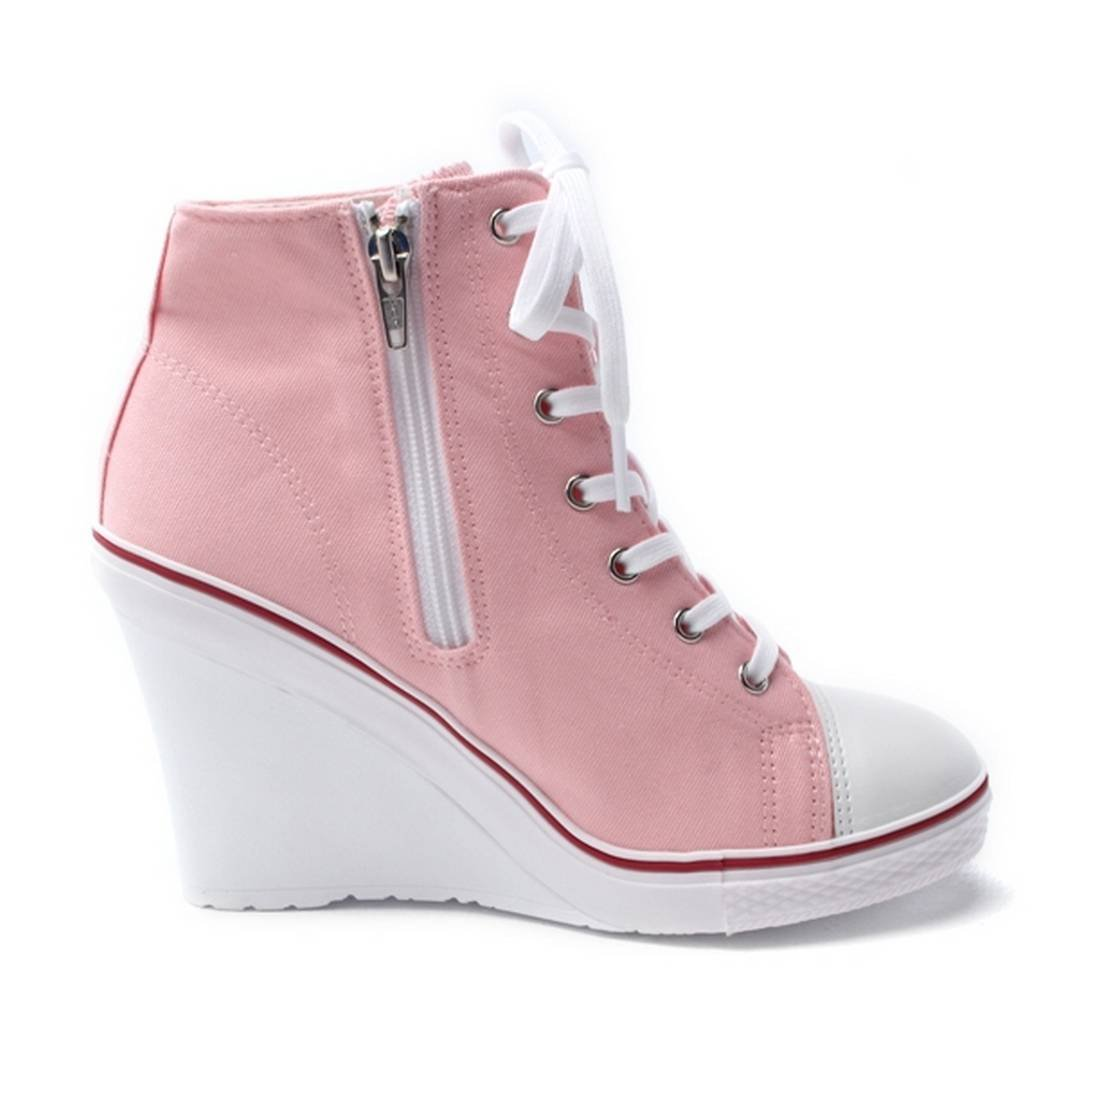 c52500e36b0 ... EpicStep EpicStep EpicStep Women s Canvas High Top Wedges High Heels  Casual Fashion Sneakers B00XTVK3J0 8 B ...